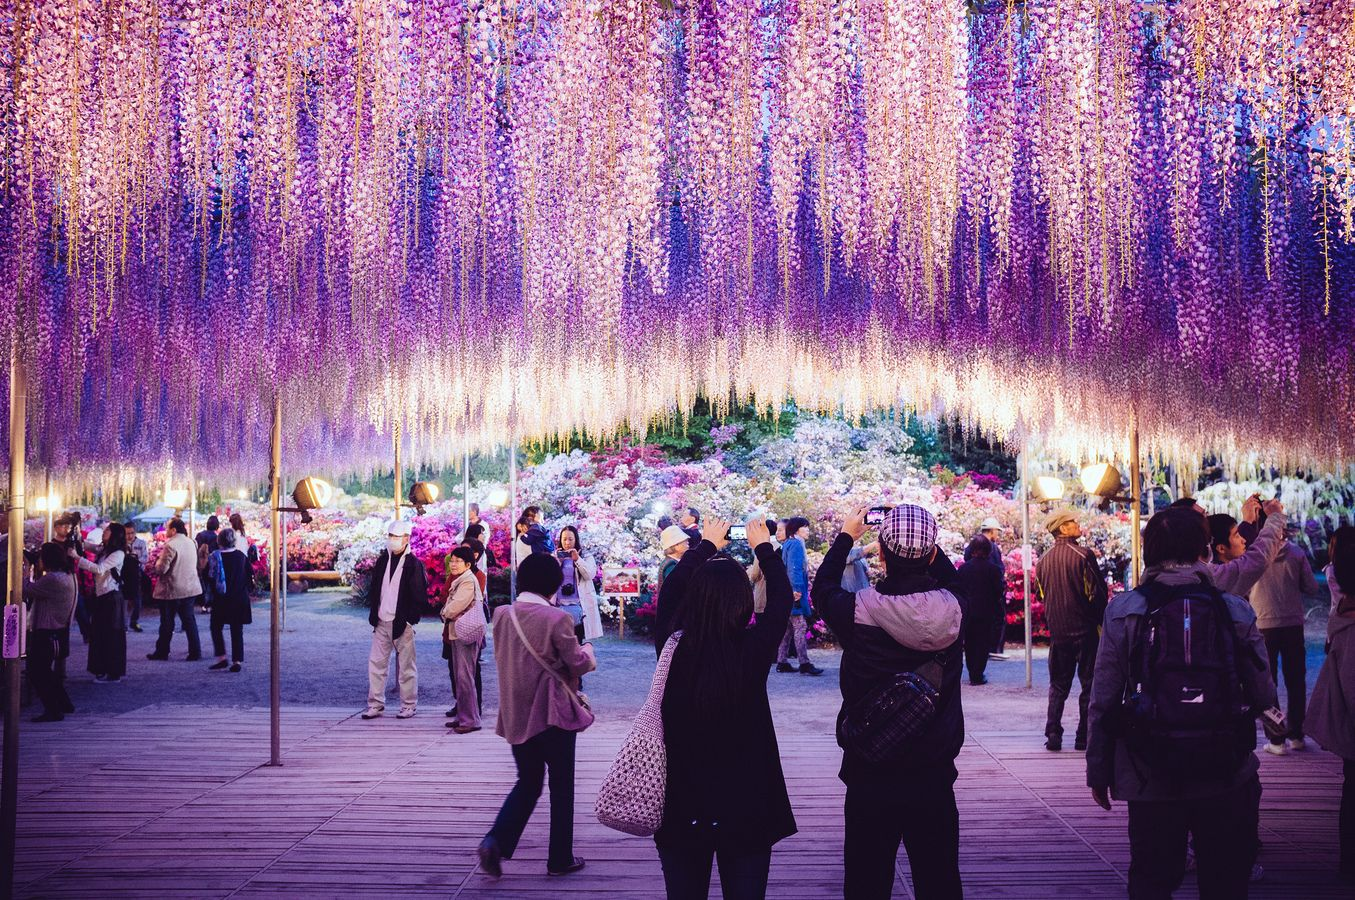 The Vines Of A Wisteria Plant In Japan S Ashikaga Flower Park Have Been Trained For Over 100 Years To Resemble A Tree That Measures 10 000 Square Feet Wisteria Tree Purple Wisteria Wisteria Plant